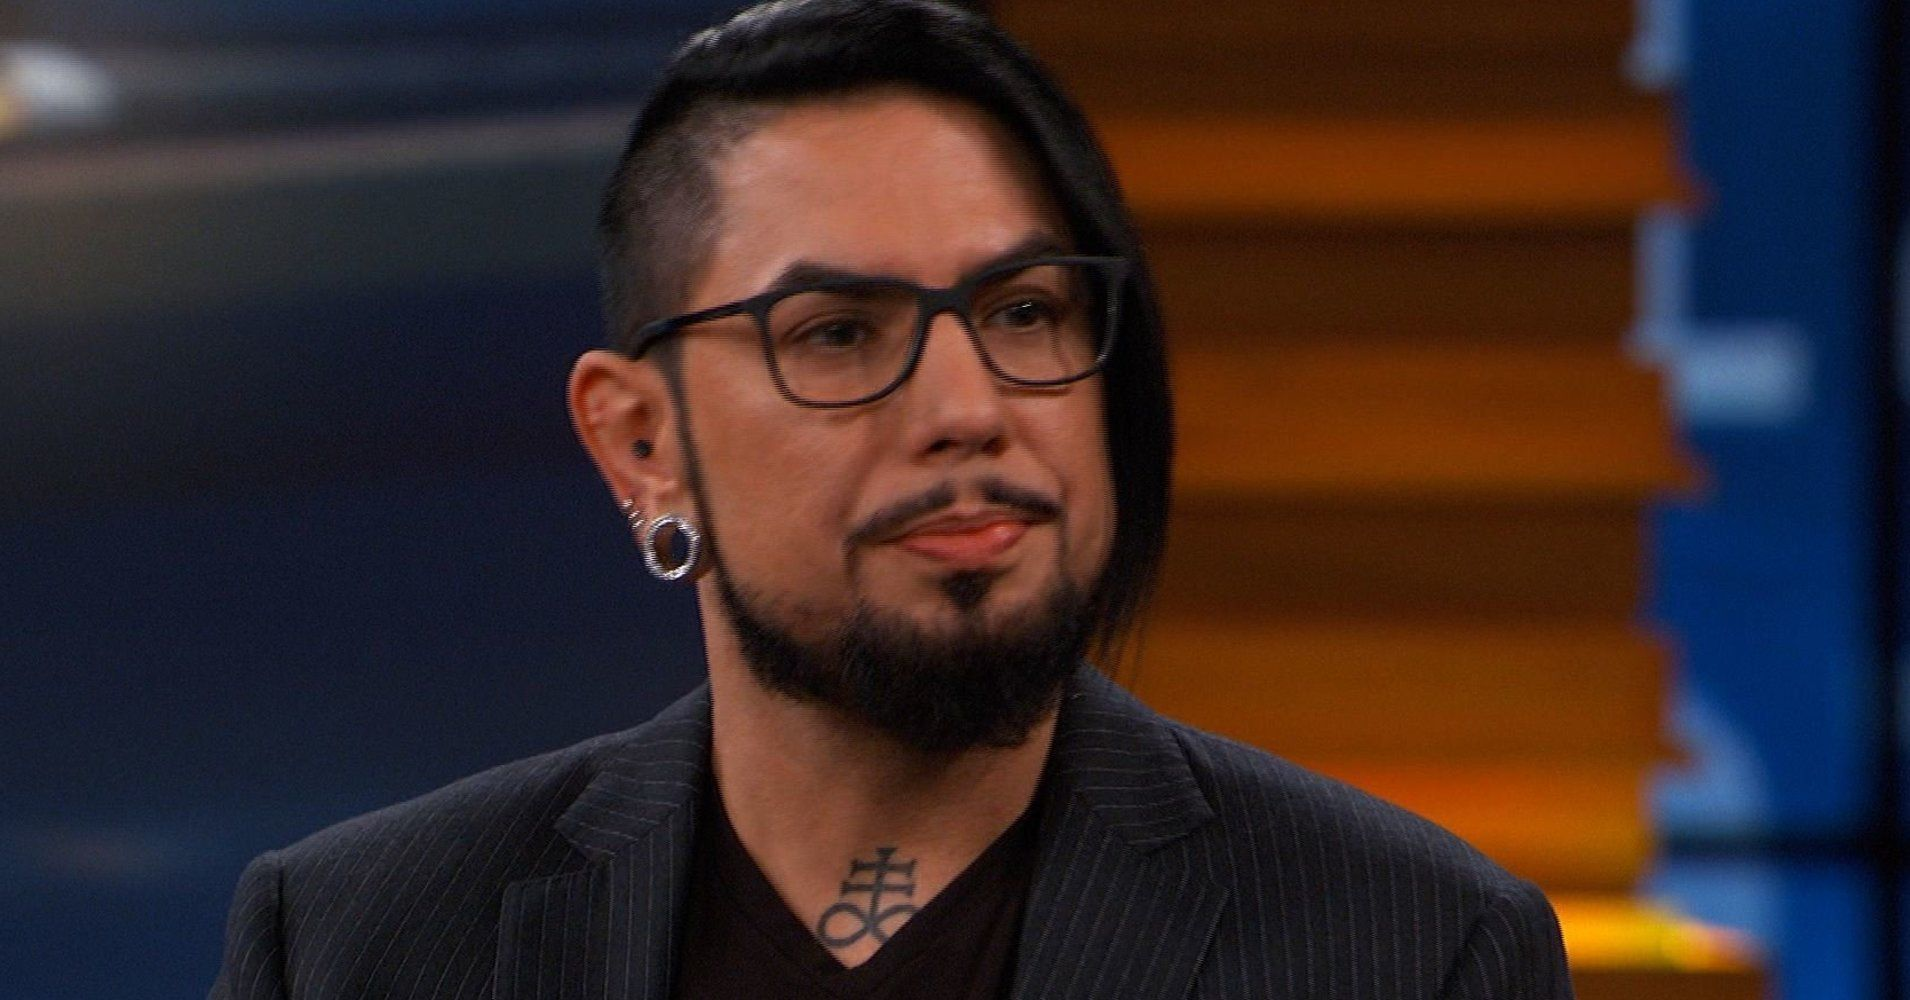 Pin on Dave Navarro